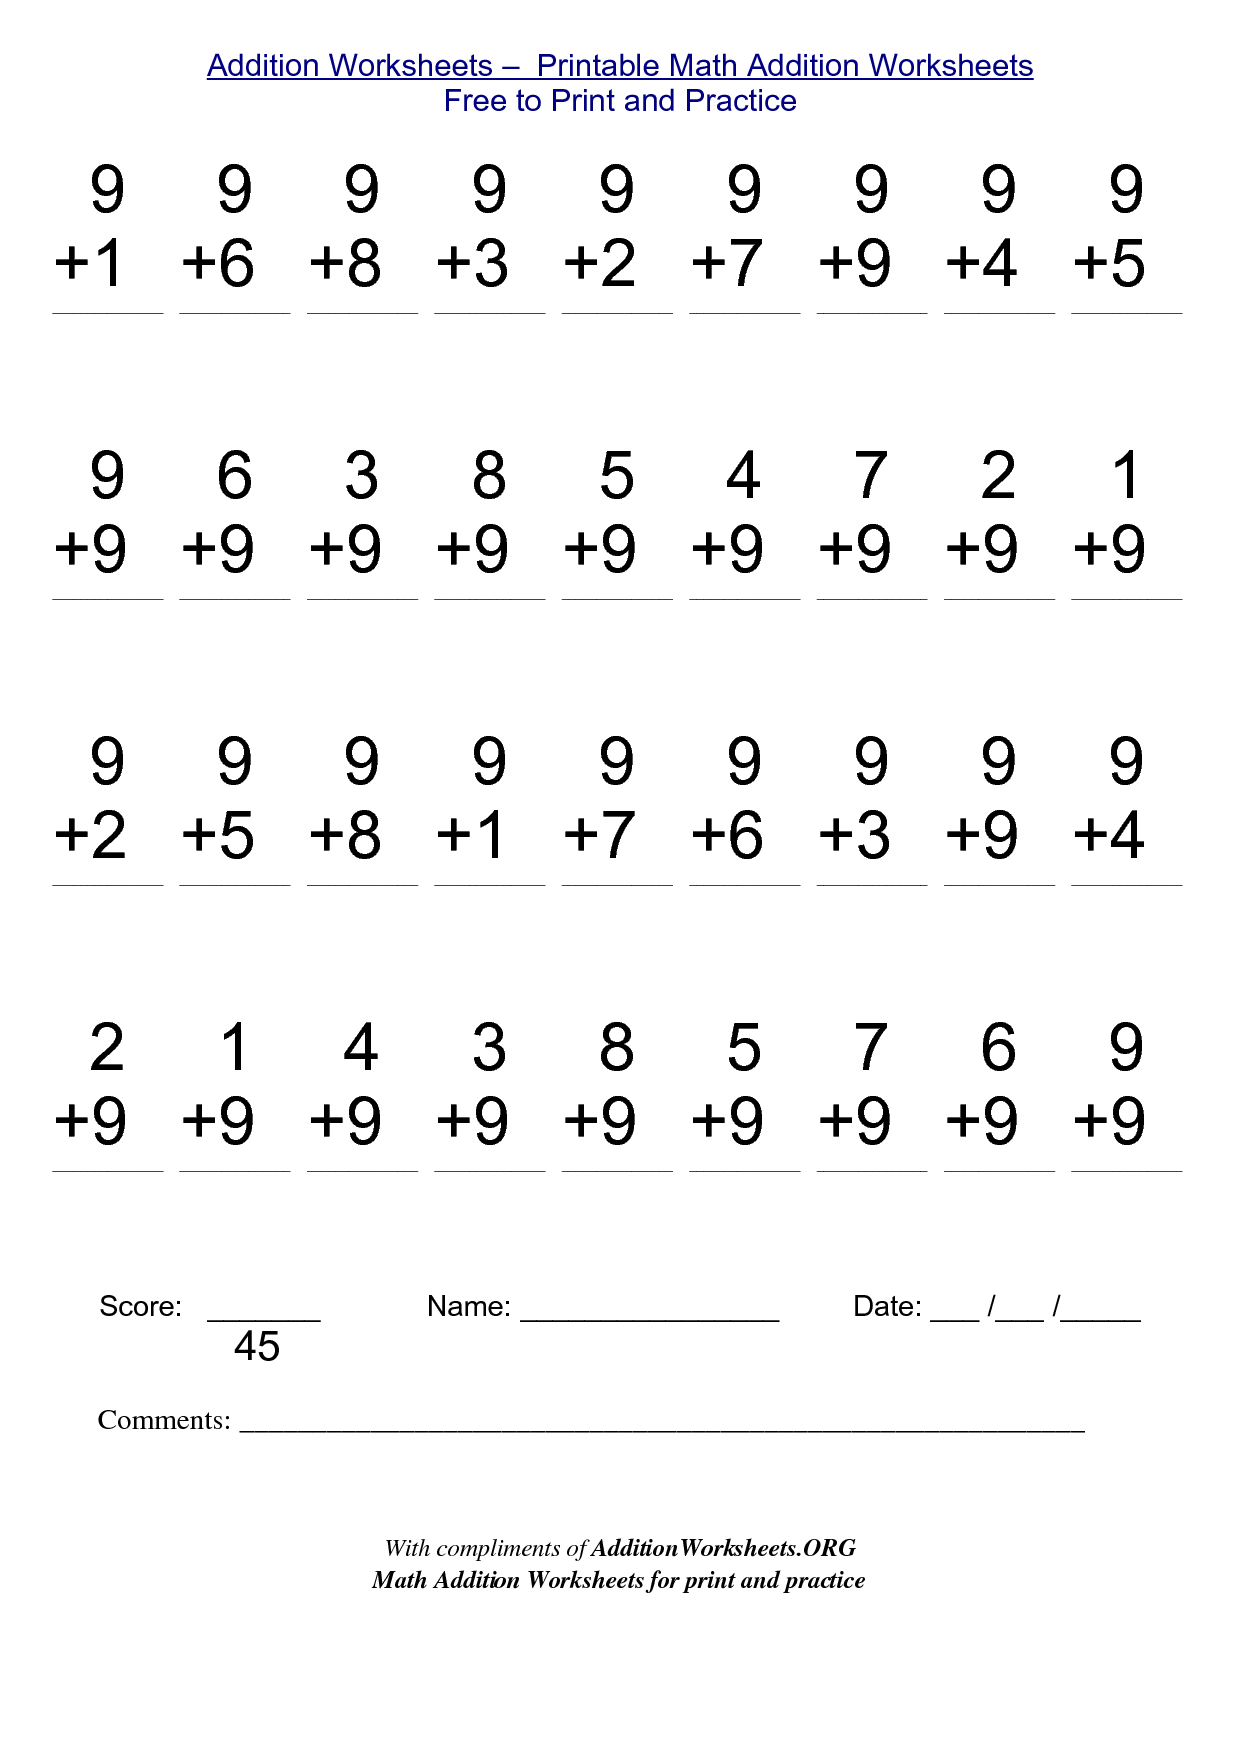 Math Worksheets for Free to Print Alot ME – Addition Worksheet for Kids